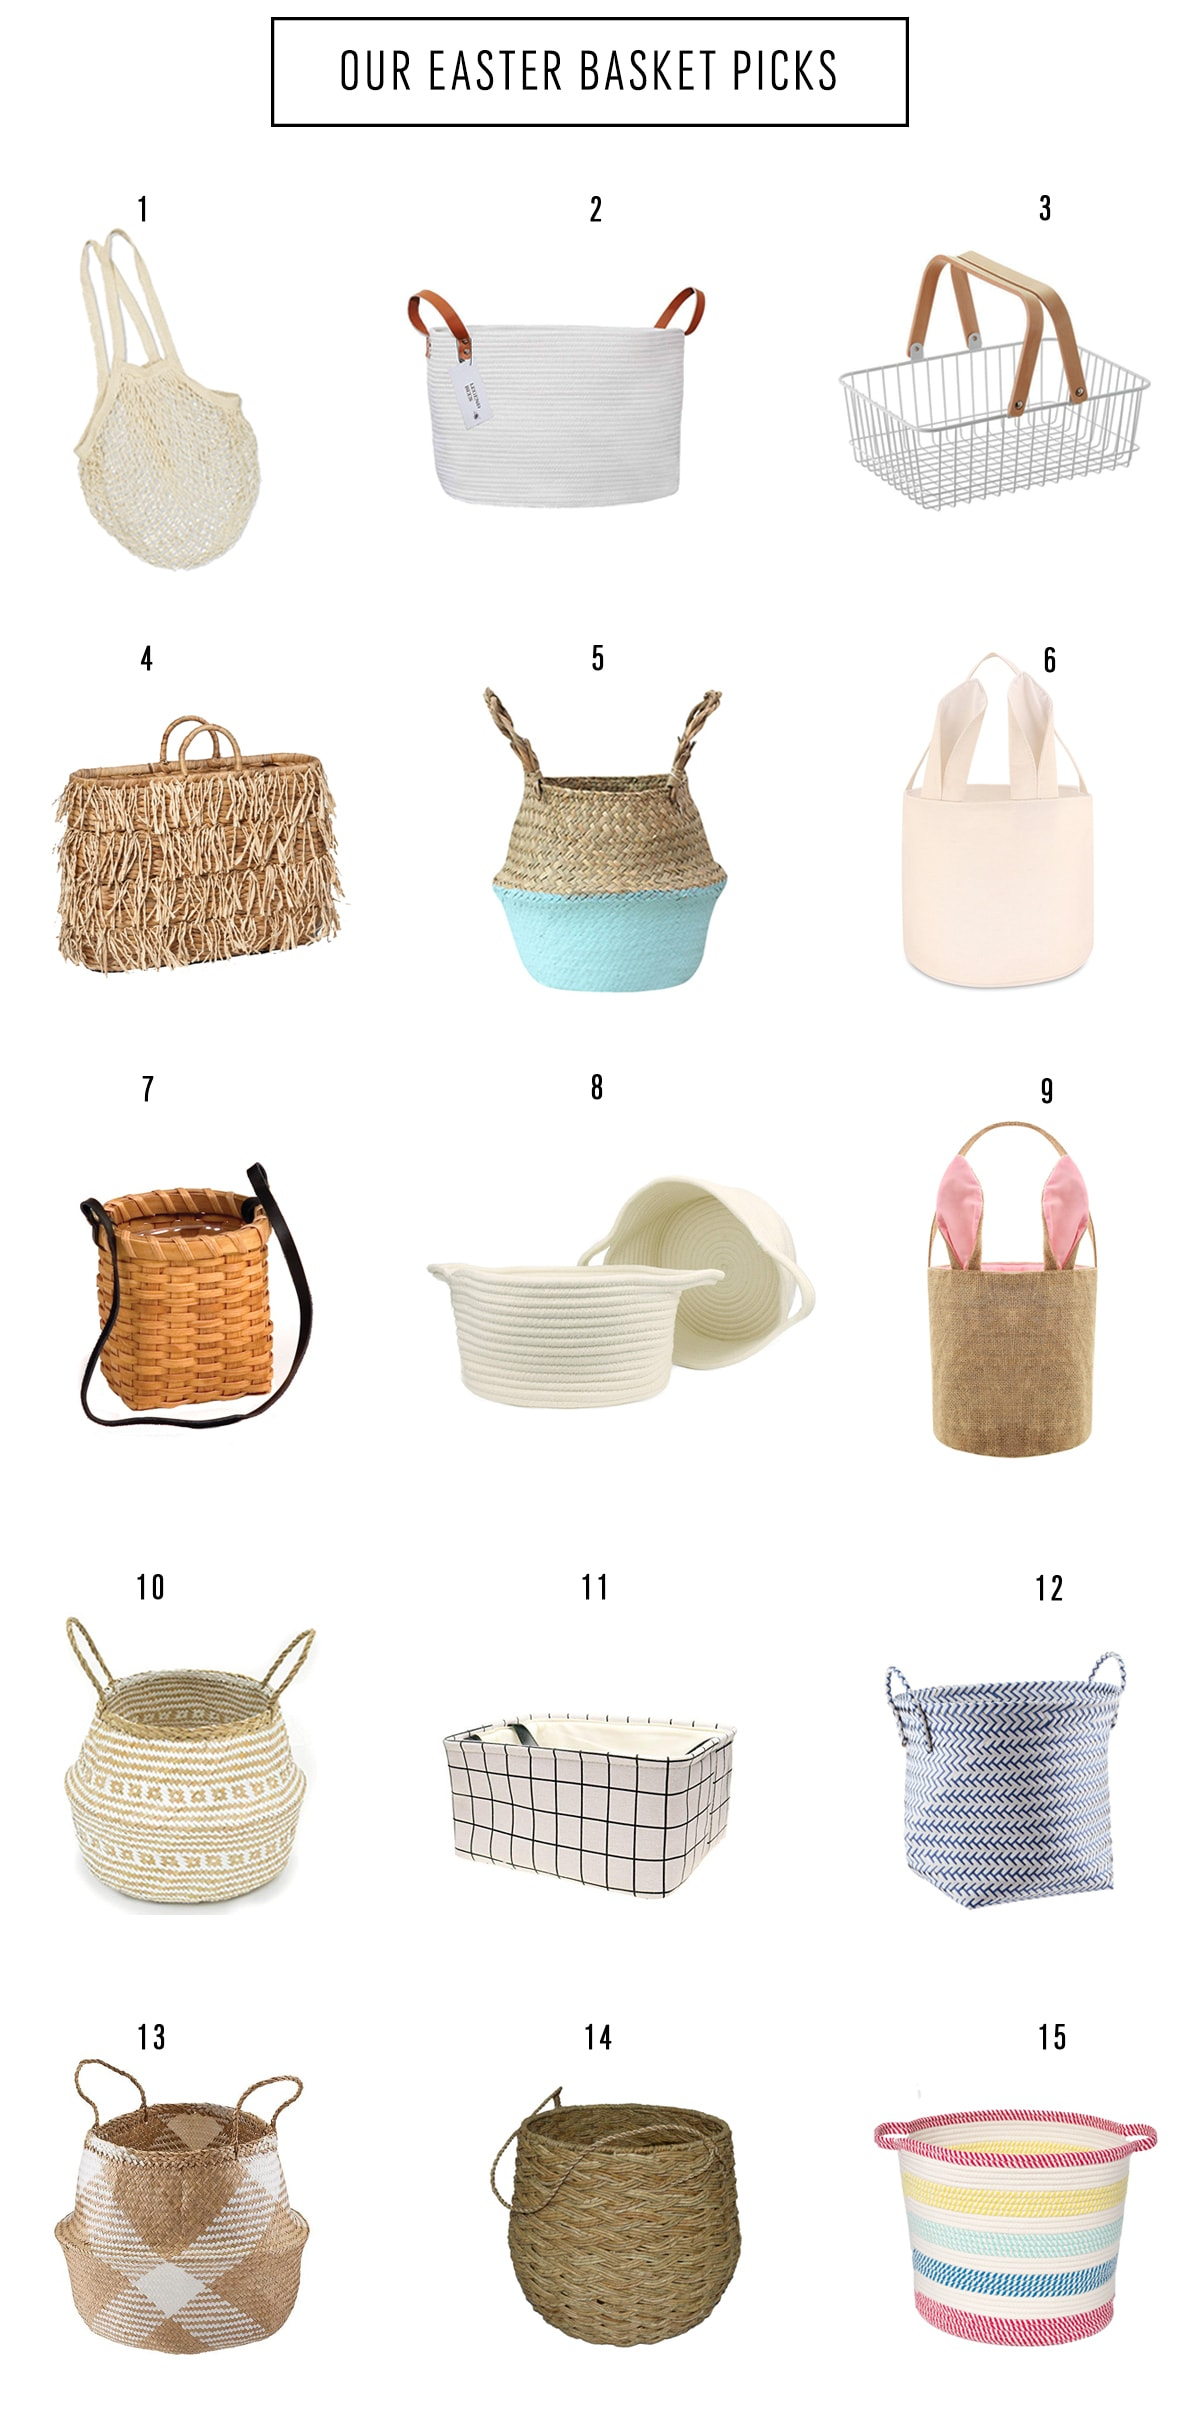 Easter Basket Picks by top Houston lifestyle blogger Ashley Rose of Sugar & Cloth